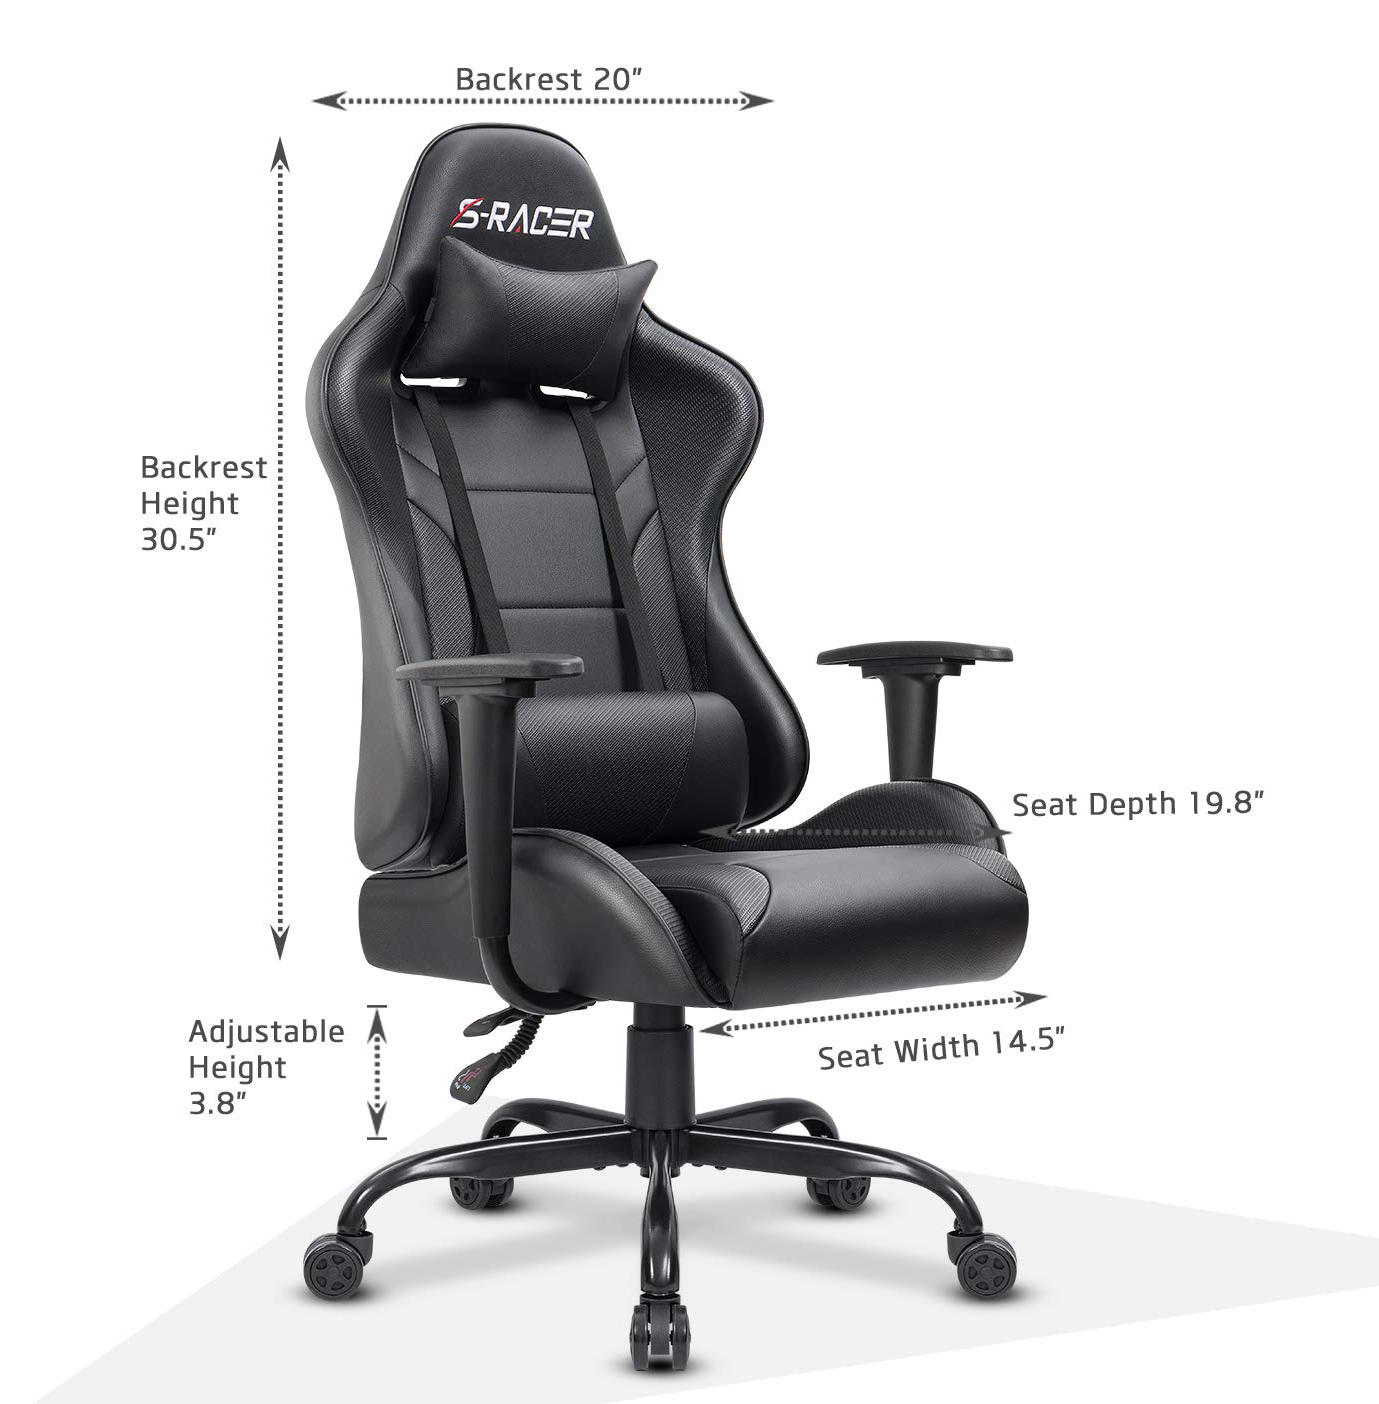 Racing Seat Office Chair Homall Office Gaming Chair Carbon Pu Leather Reclining Black Racing Style Executive Ergonomic Hydraulic Swivel Seat With Headrest And Lumbar Support